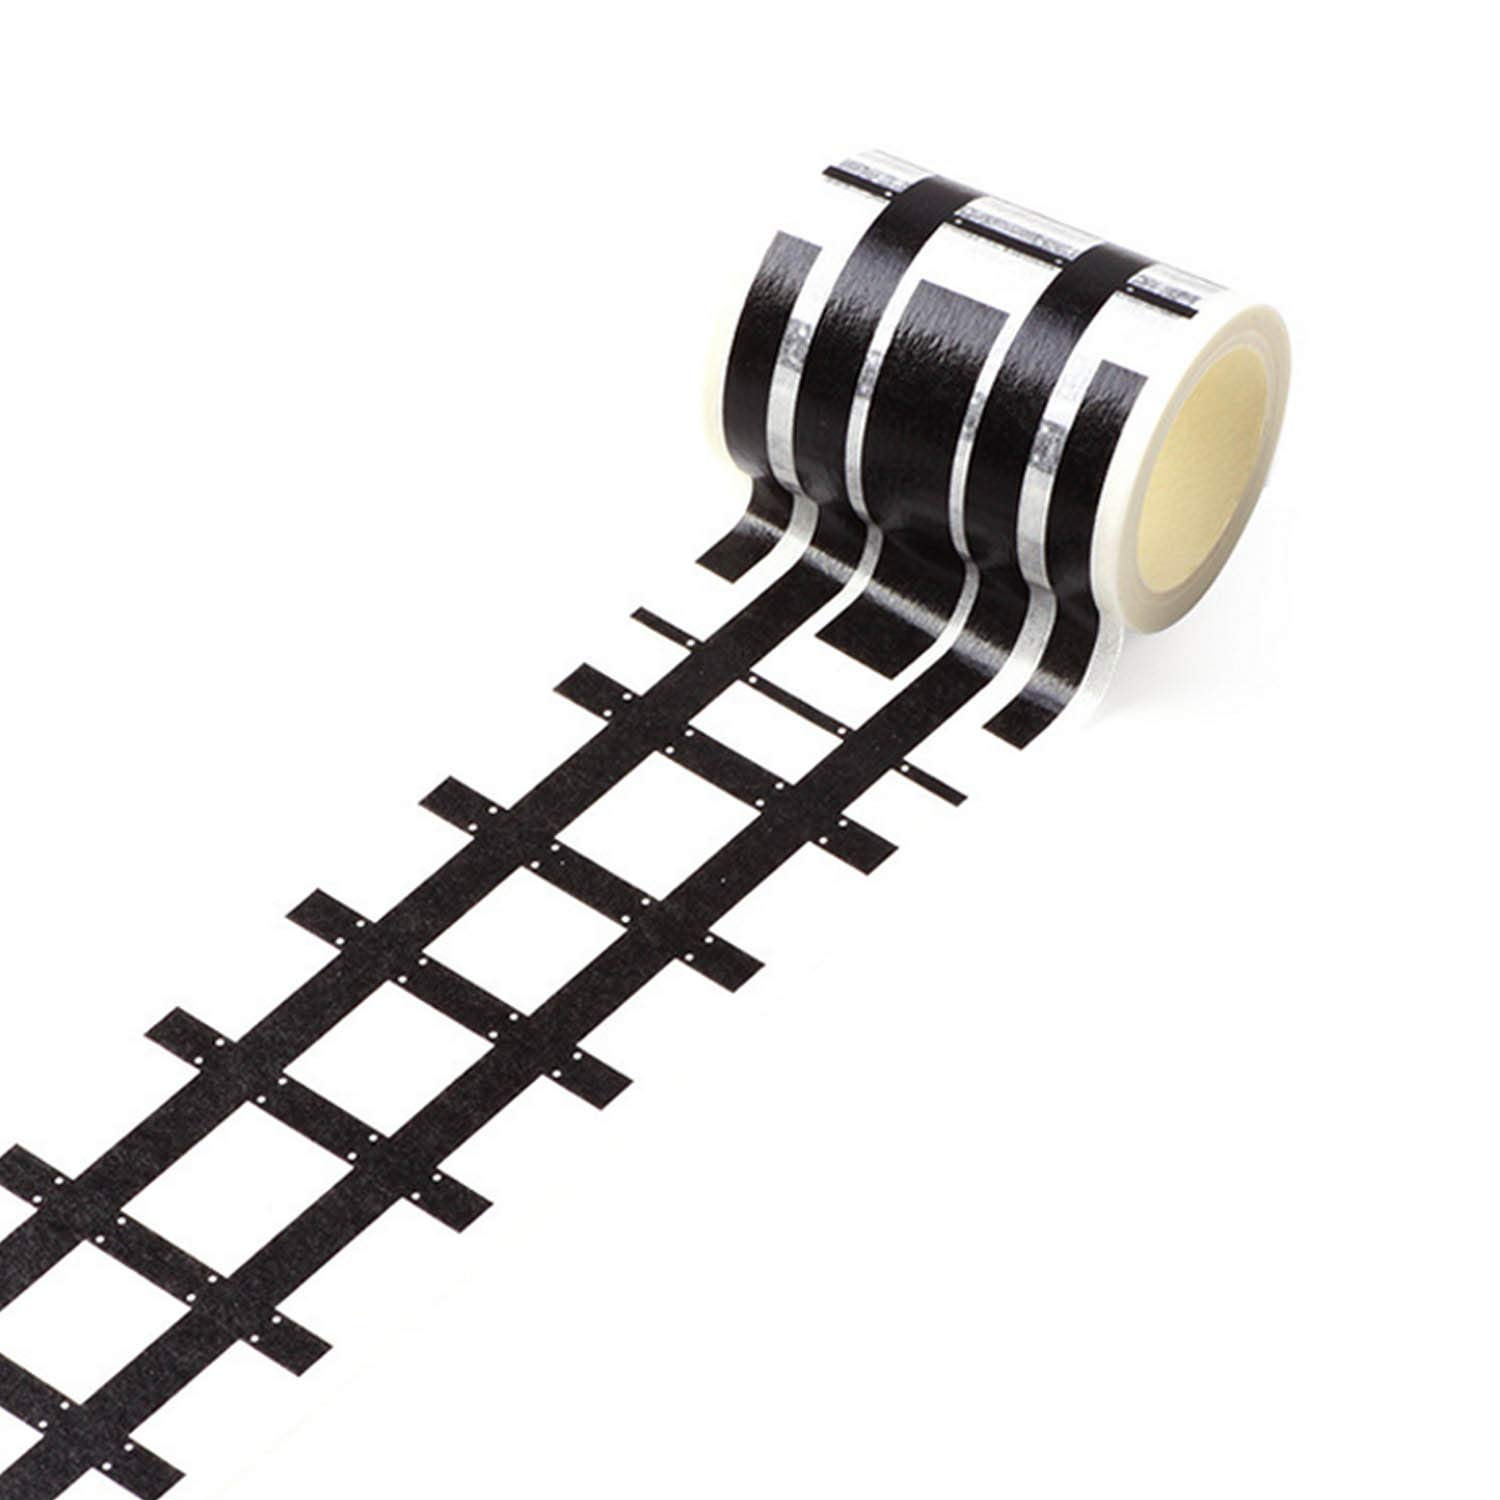 Beetest uk DIY Traffic Road Railway Adhesive Removable Washi Masking Tape Sticker for Children Kids Toy Cars Trains 5 x 500cm Style B